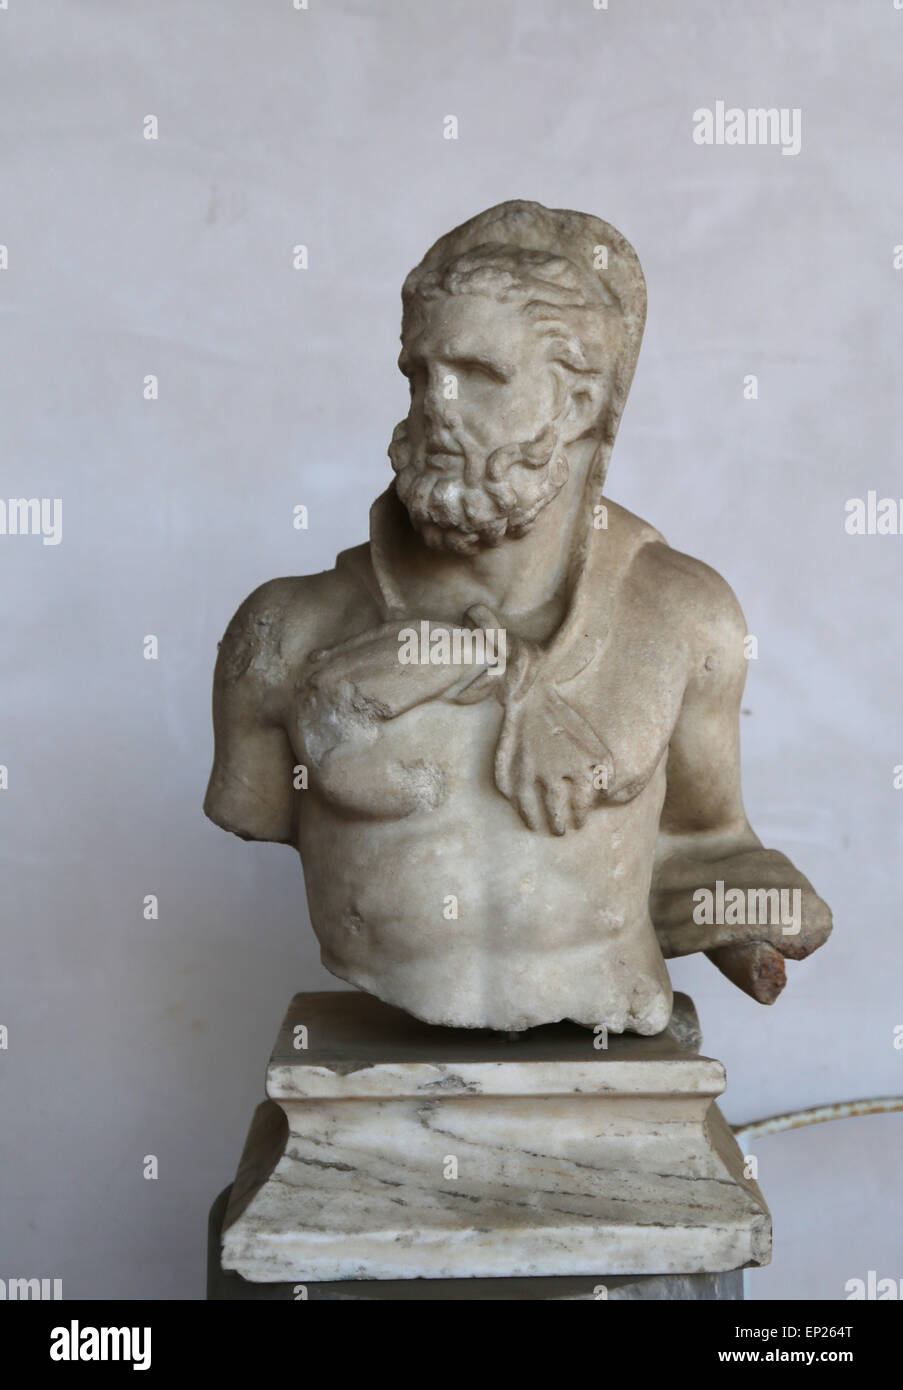 Statue of Heracles with the head covered by leonte. Greek, marble. During the rule of Hadrian, 117-138 AD. Unknown - Stock Image